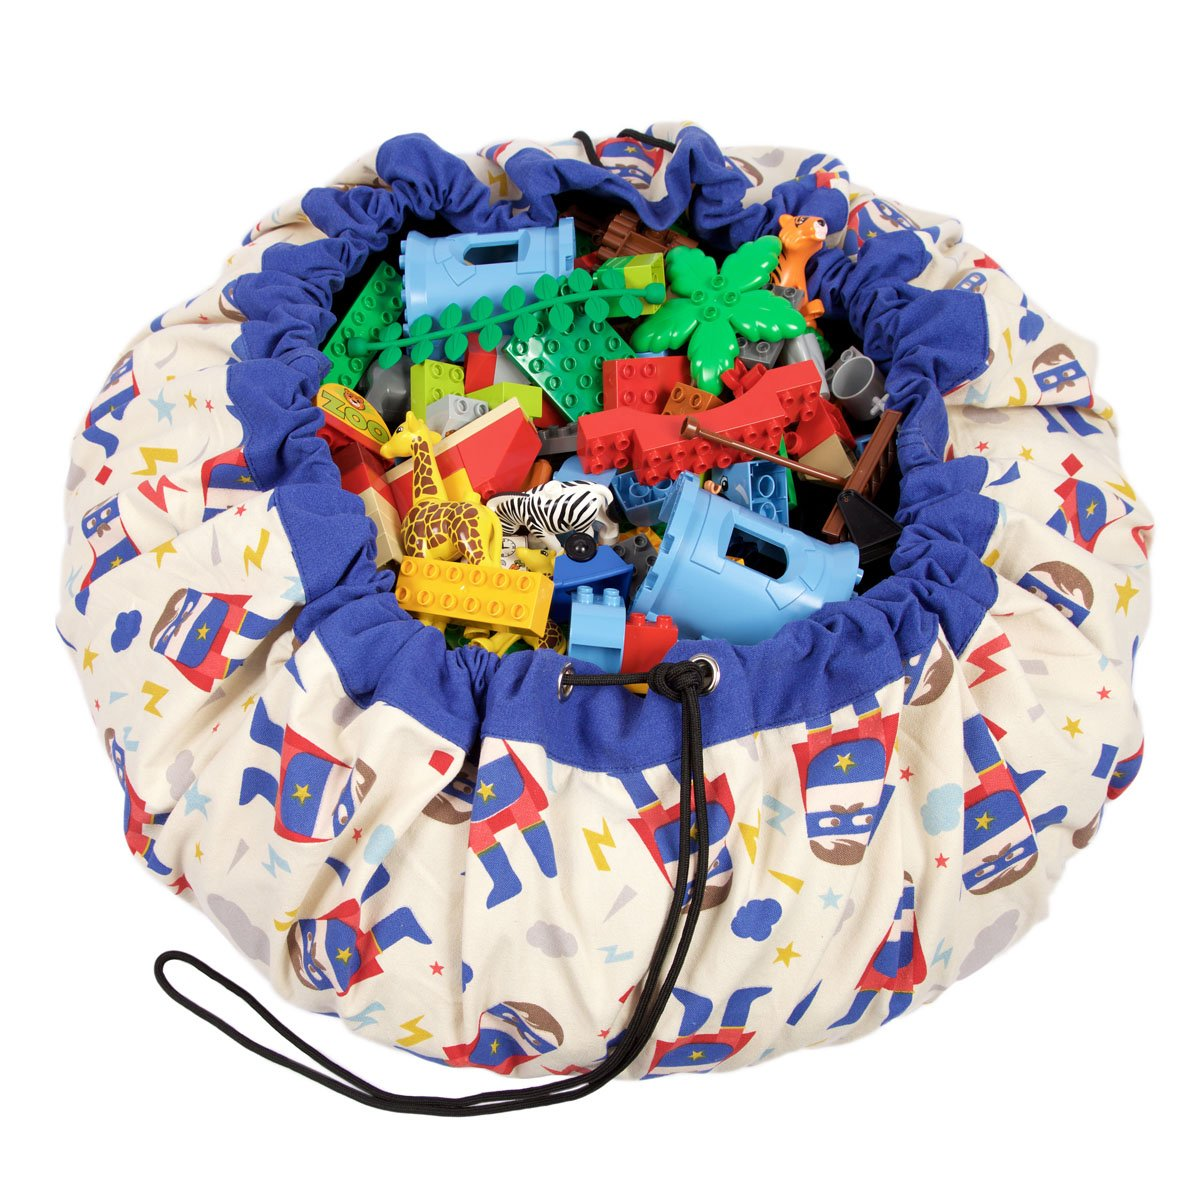 Play Mat and Toy Storage Bag - Durable Floor Activity Organizer Mat - Large Drawstring Portable Container for Kids Toys, Books - 55'', Superhero by Play&Go